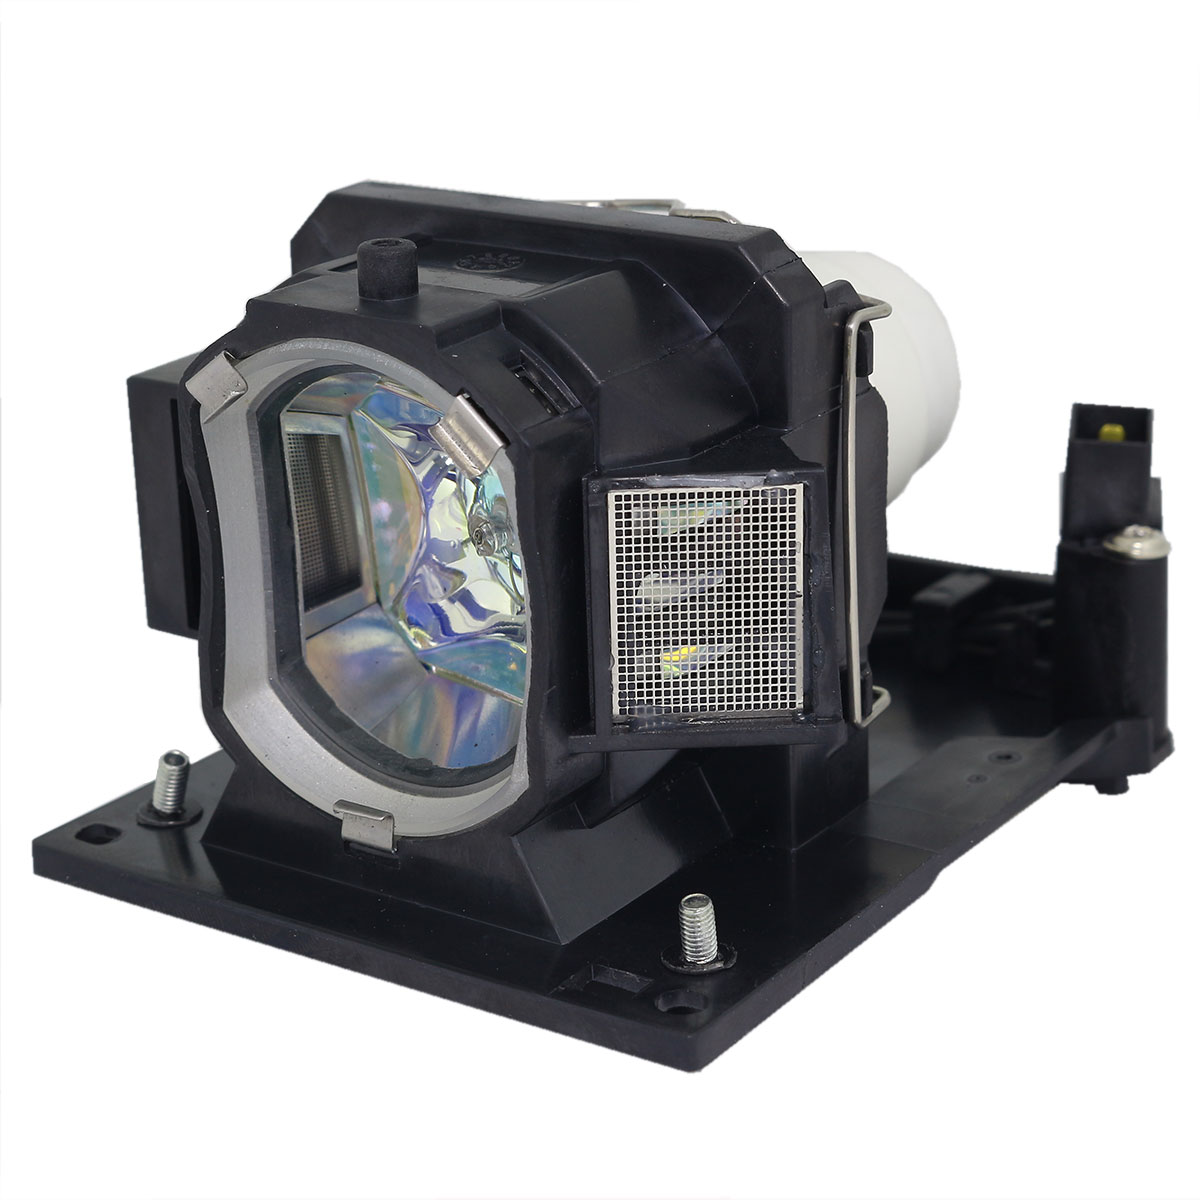 Specialty Equipment Lamps TEQ-LAMP1 FP Lamp